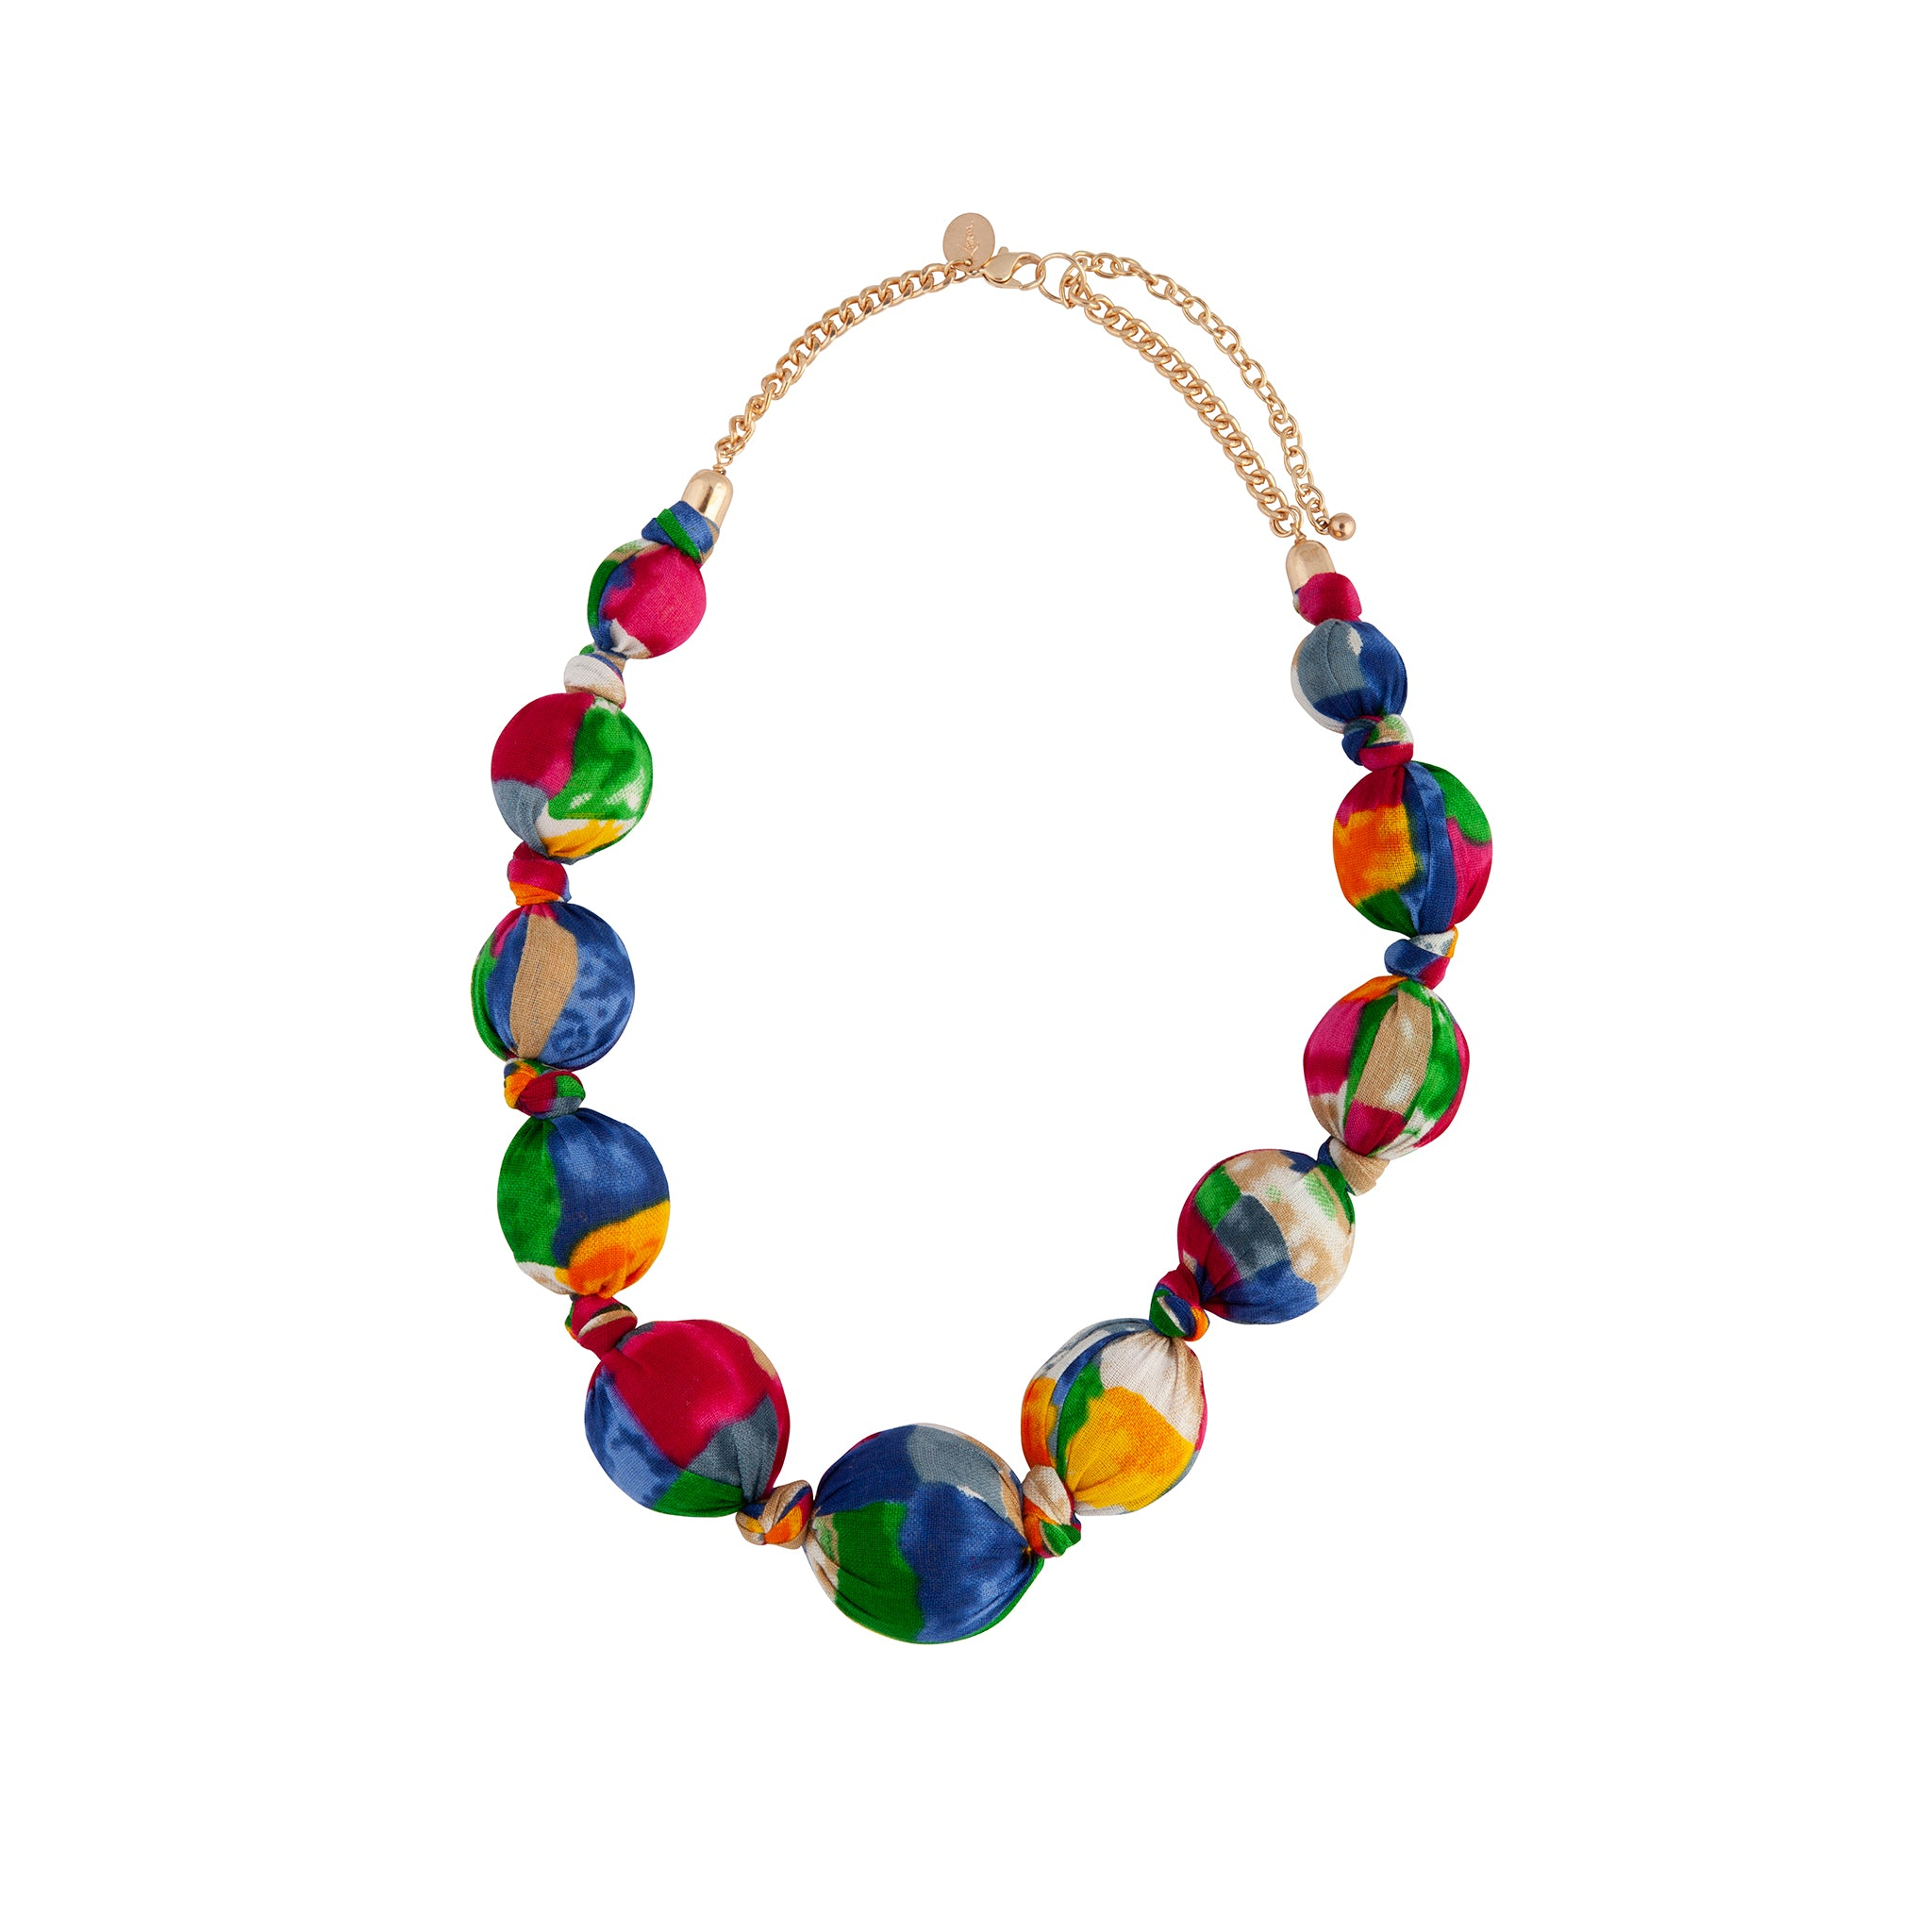 Rainbow Fabric Covered Ball Necklace